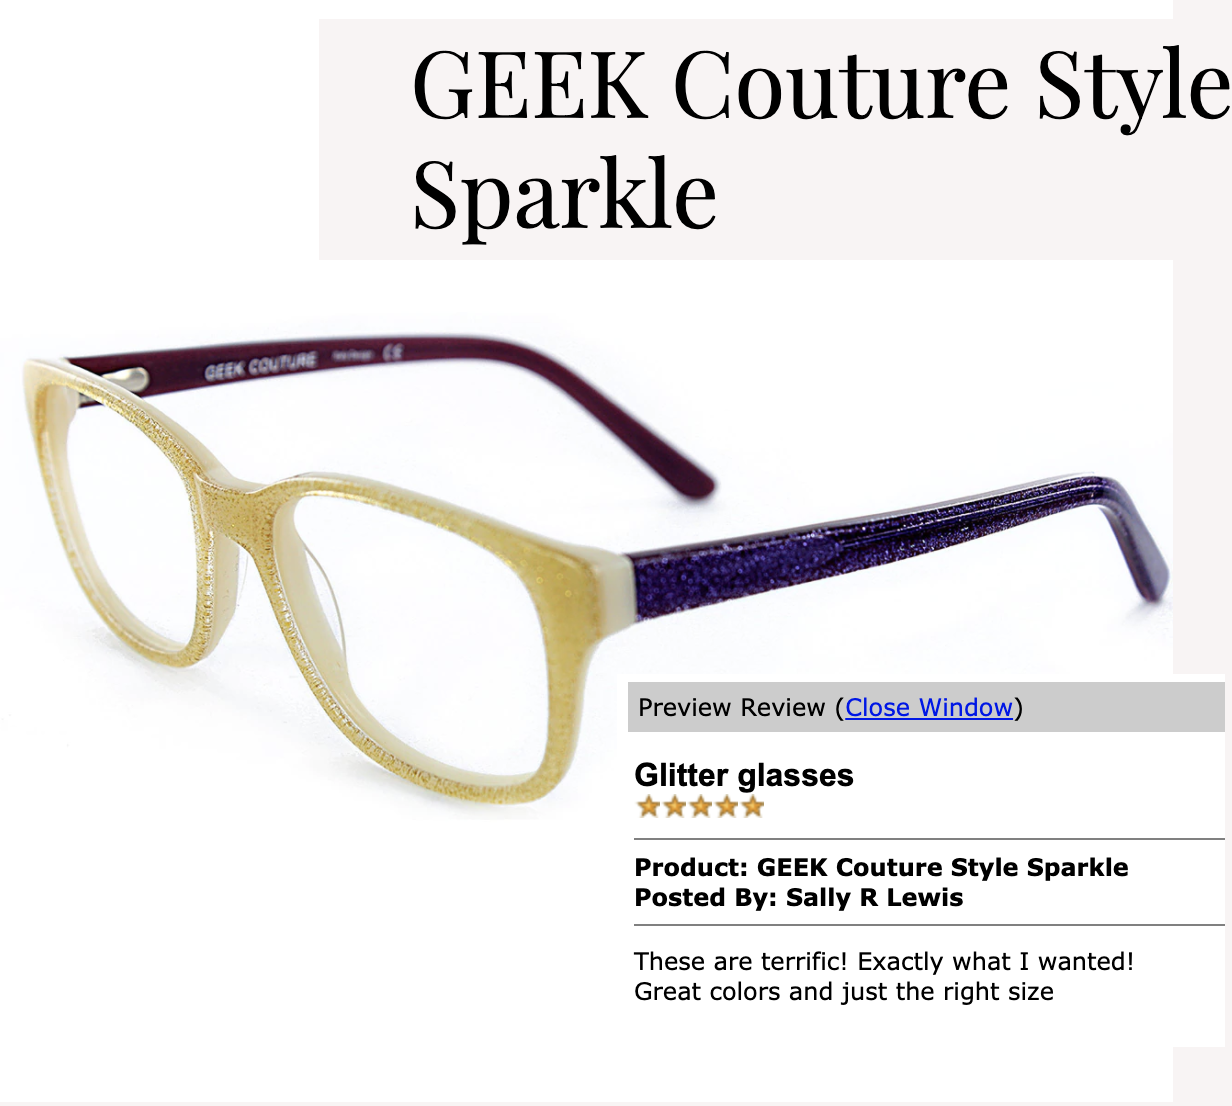 geek-couture-style-sparkle-reviews.png